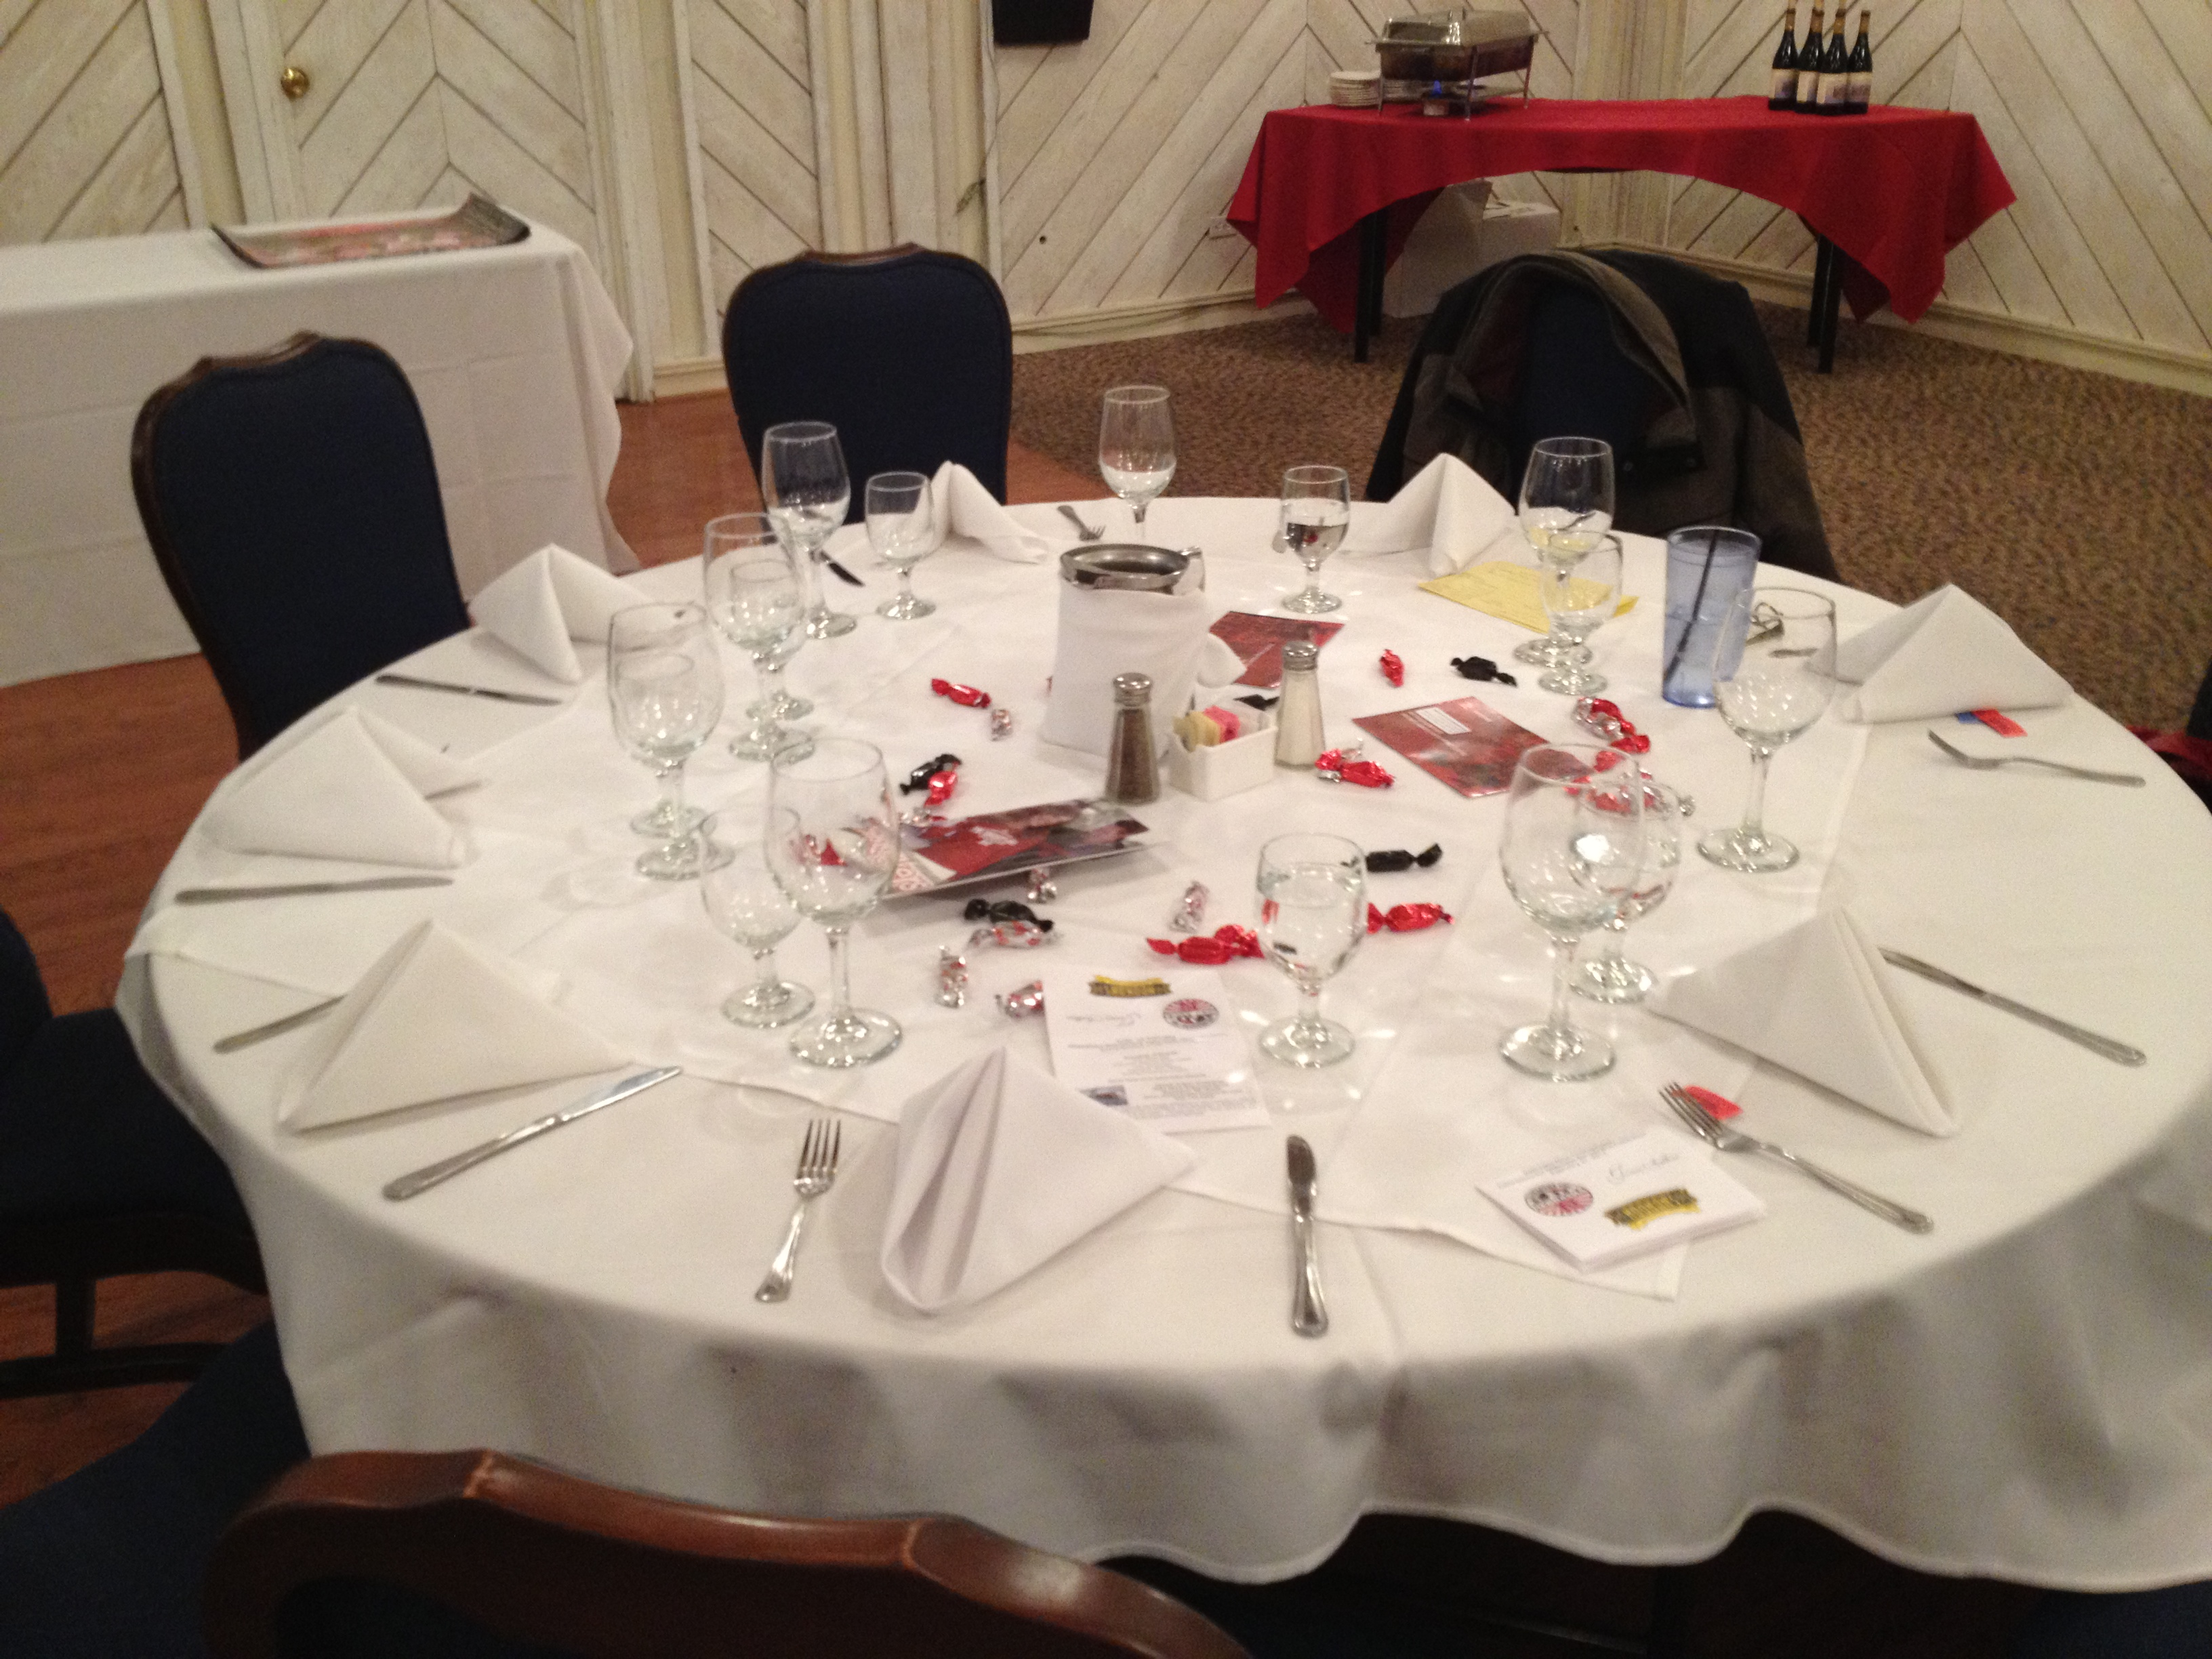 Tables are Ready, Including Bakers Candy Meltaways